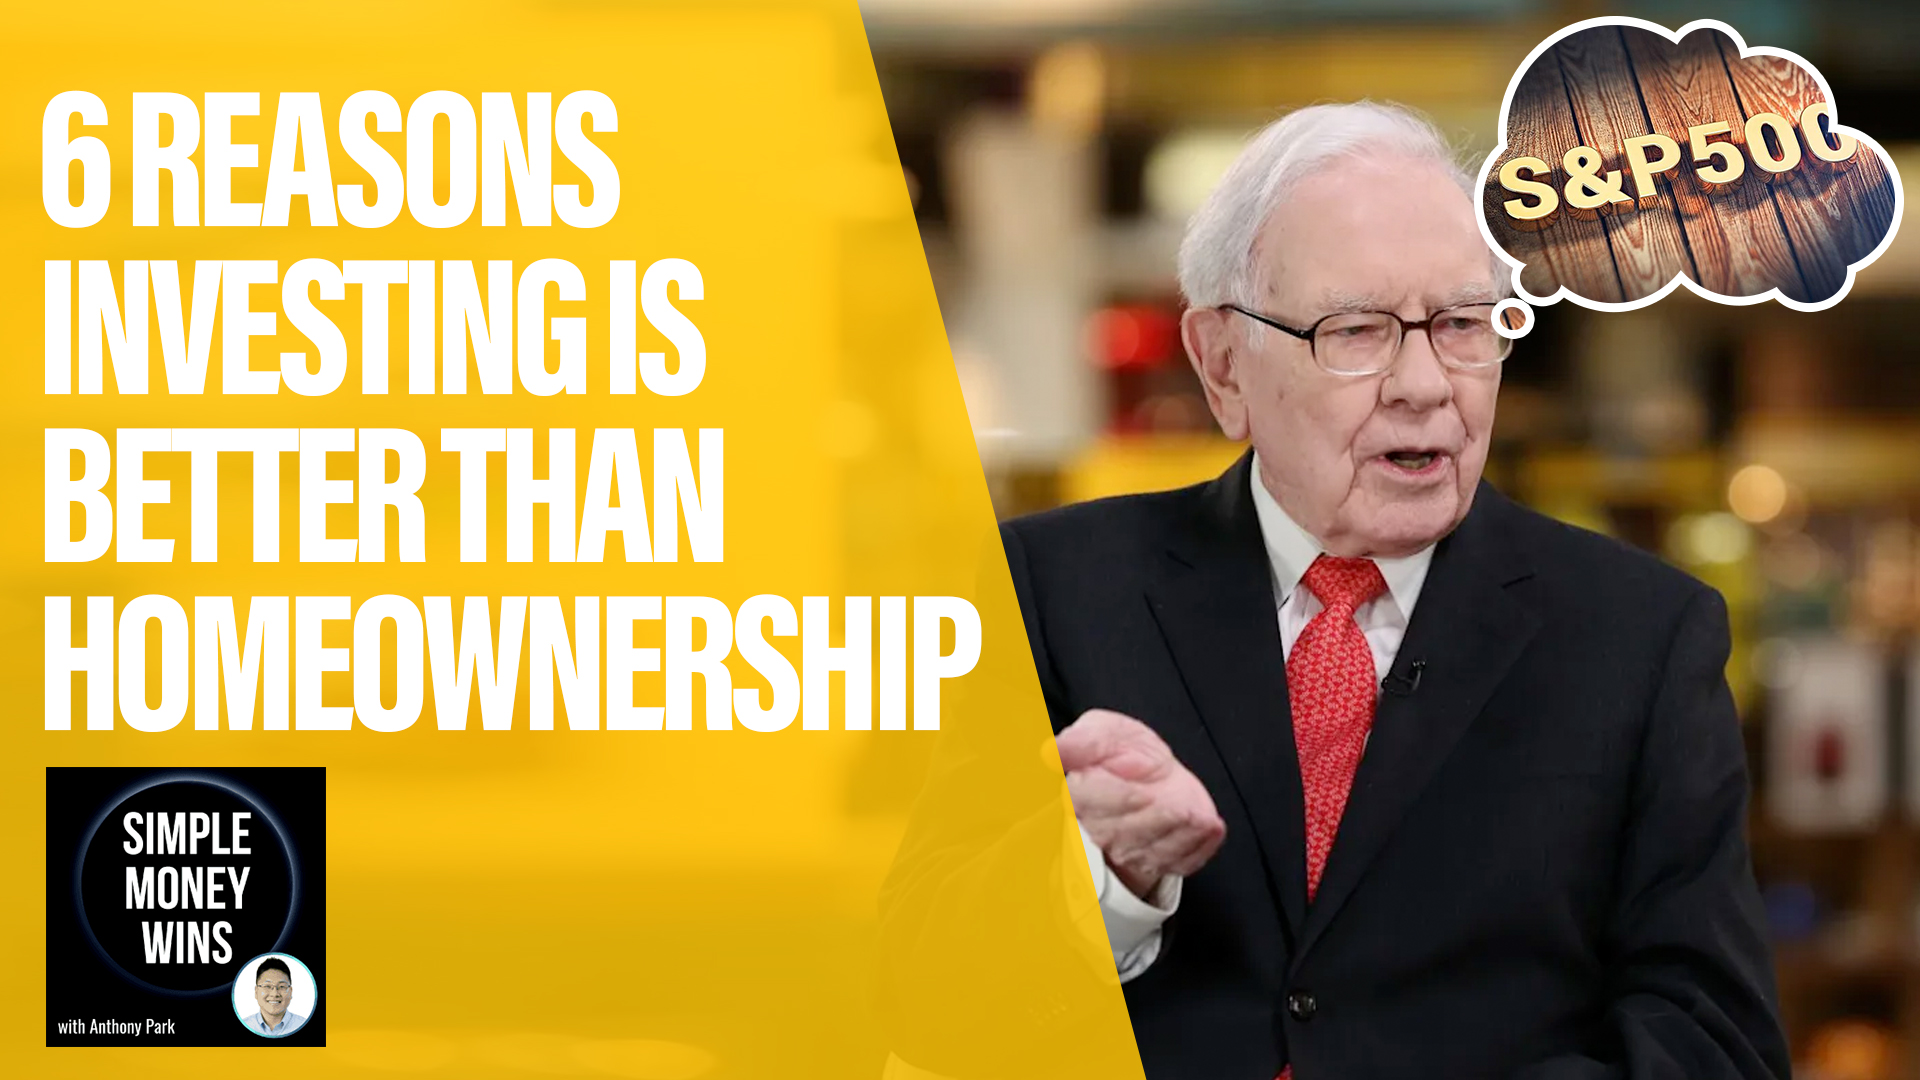 E103 6 Reasons Investing is Better than Homeownership